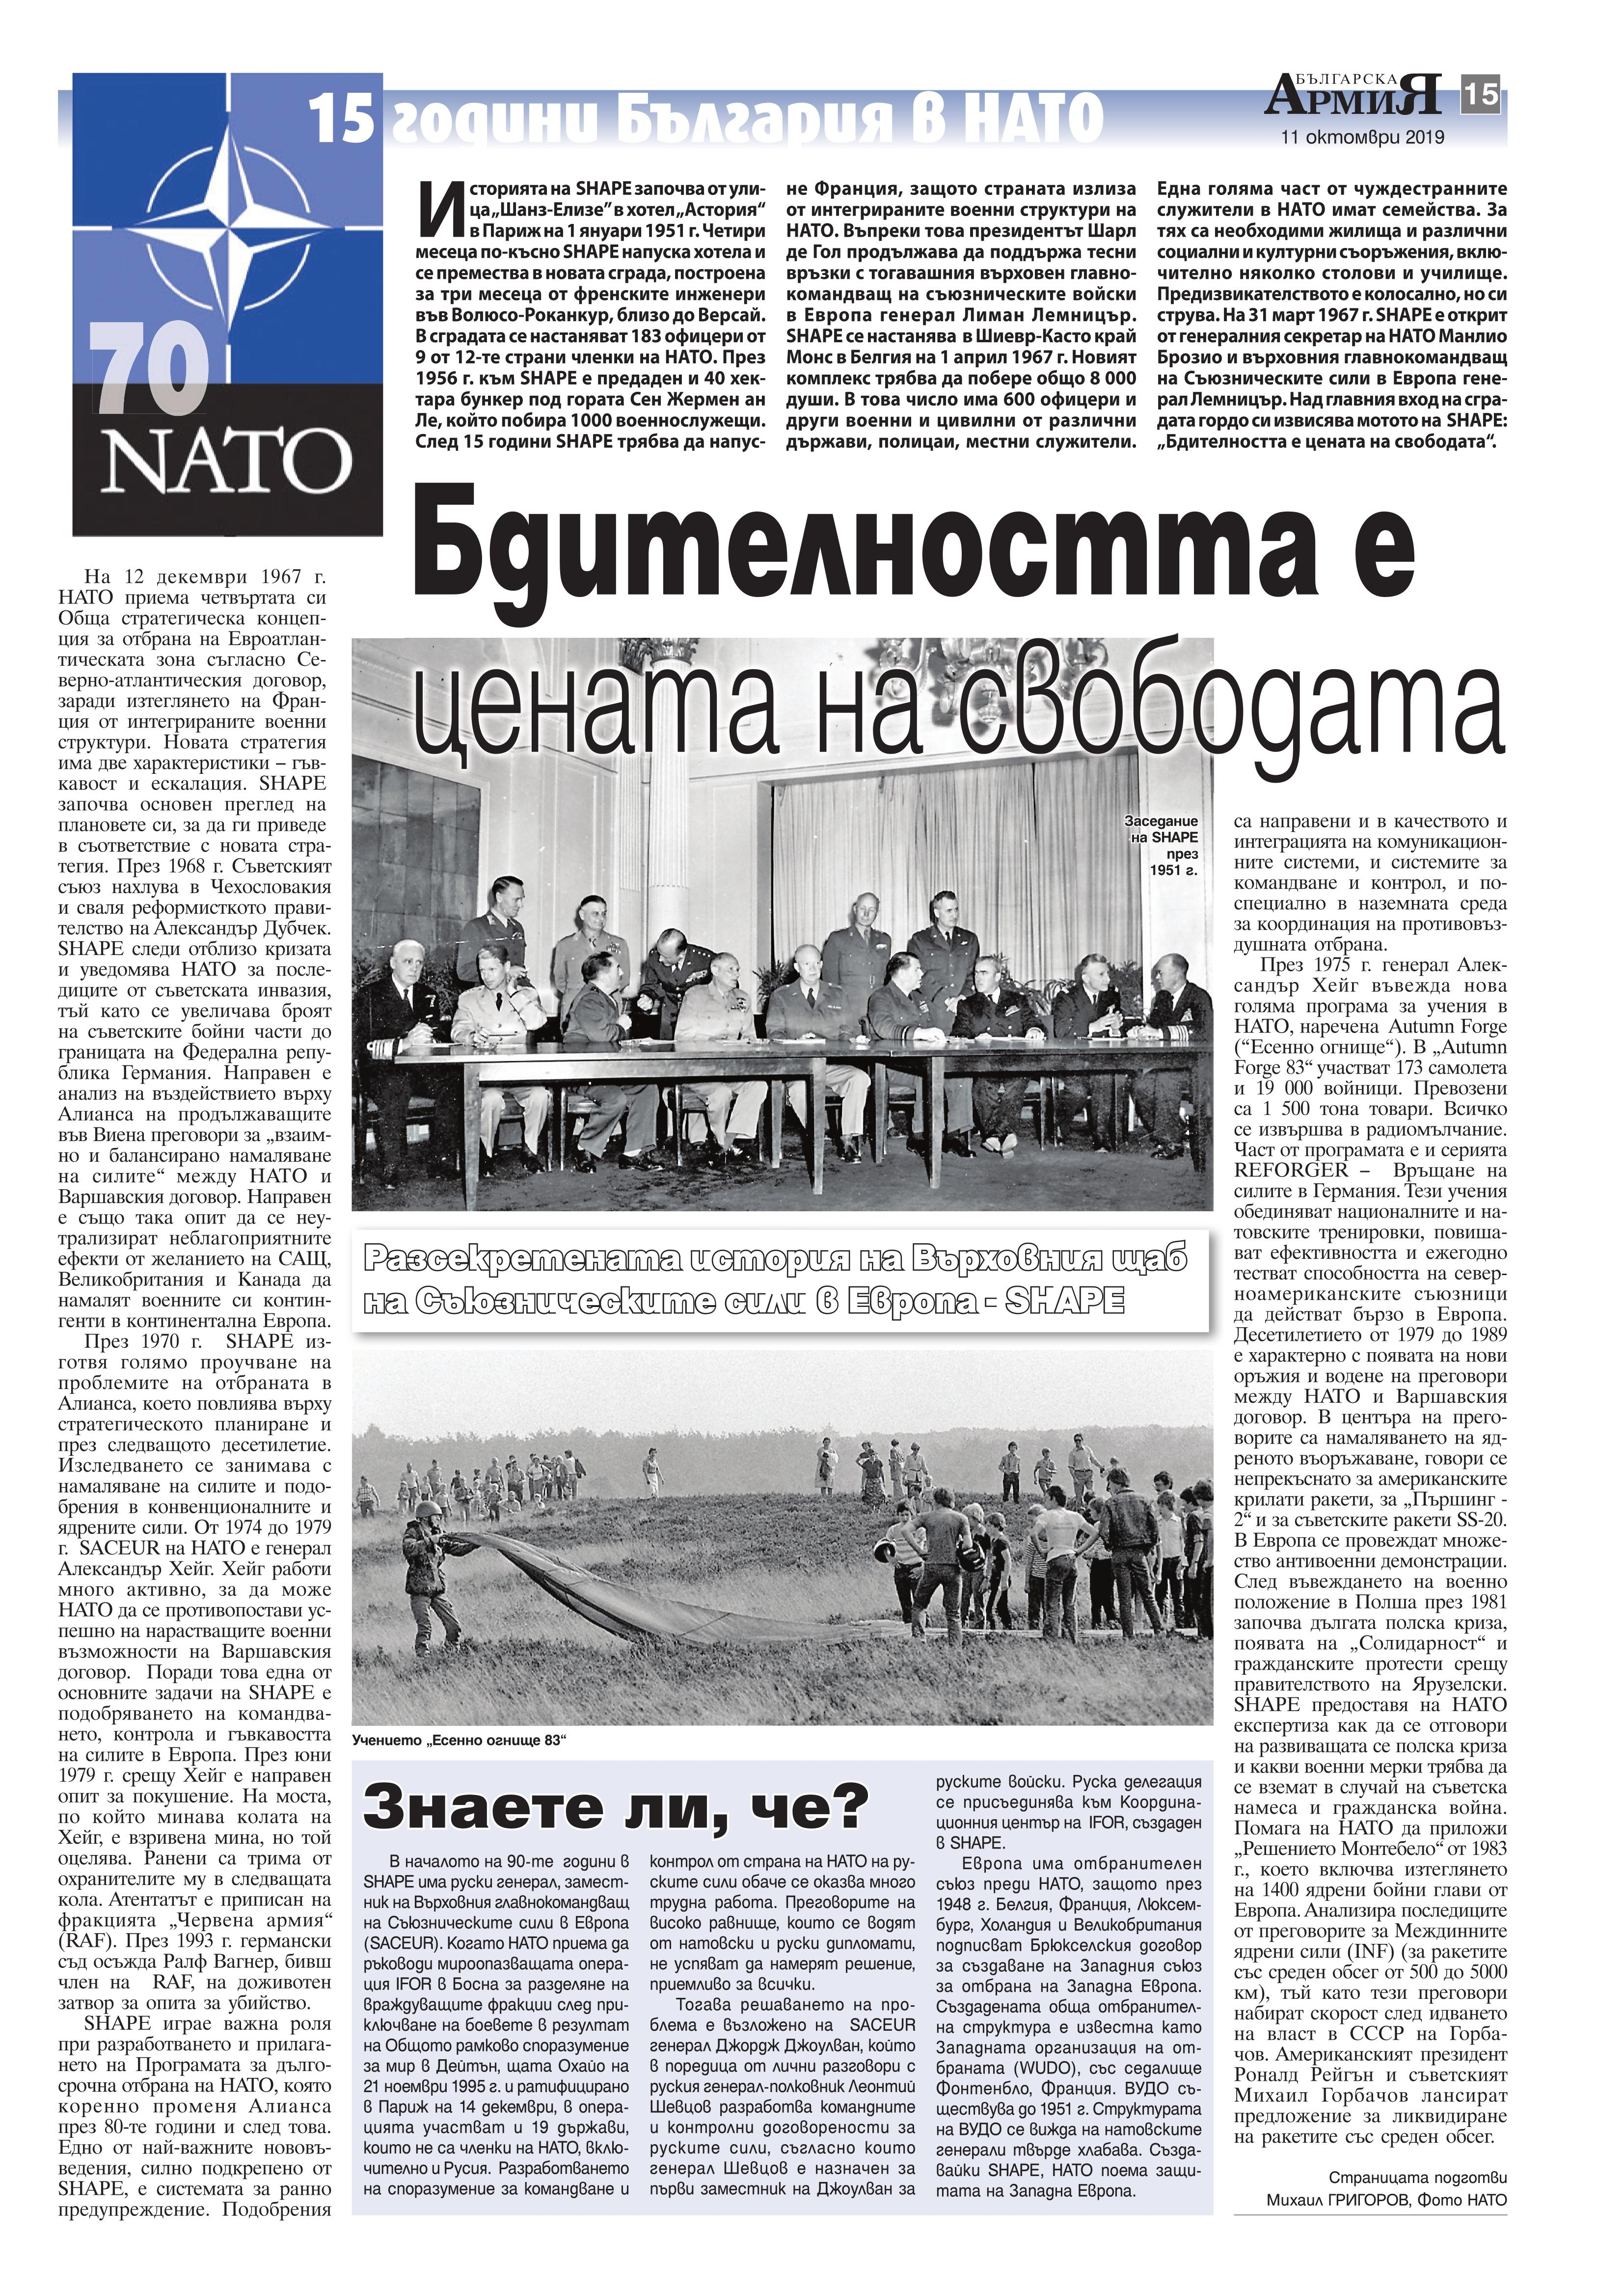 https://www.armymedia.bg/wp-content/uploads/2015/06/15.page1_-111.jpg